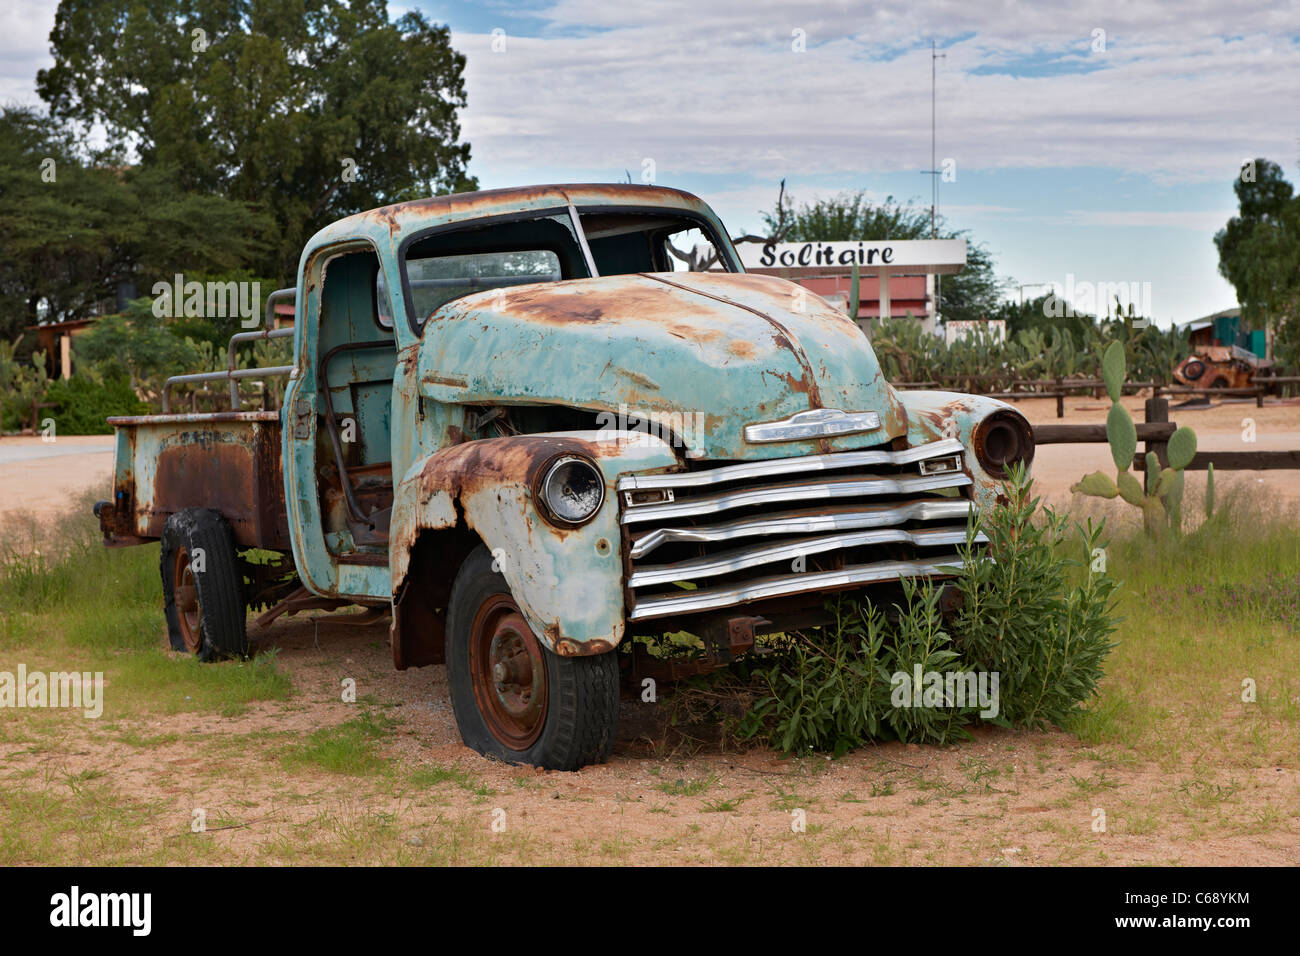 abandoned vehicle, remains of a classic car at famous filling station of Solitaire, Namibia, Africa - Stock Image